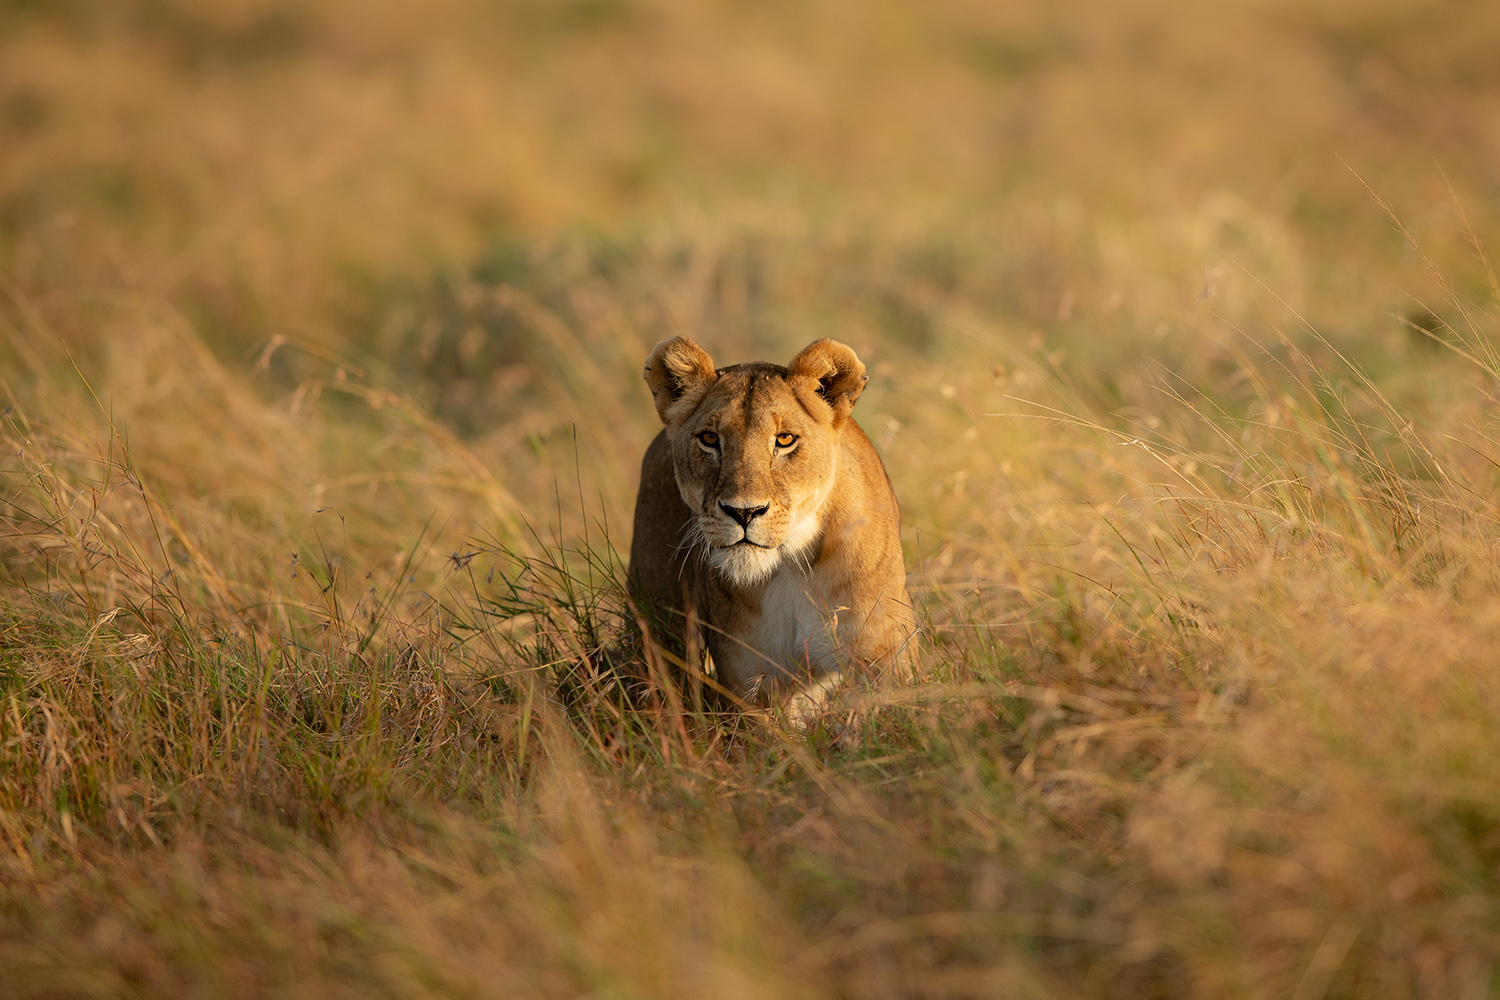 Angama Lioness in the grass at Maasai Mara